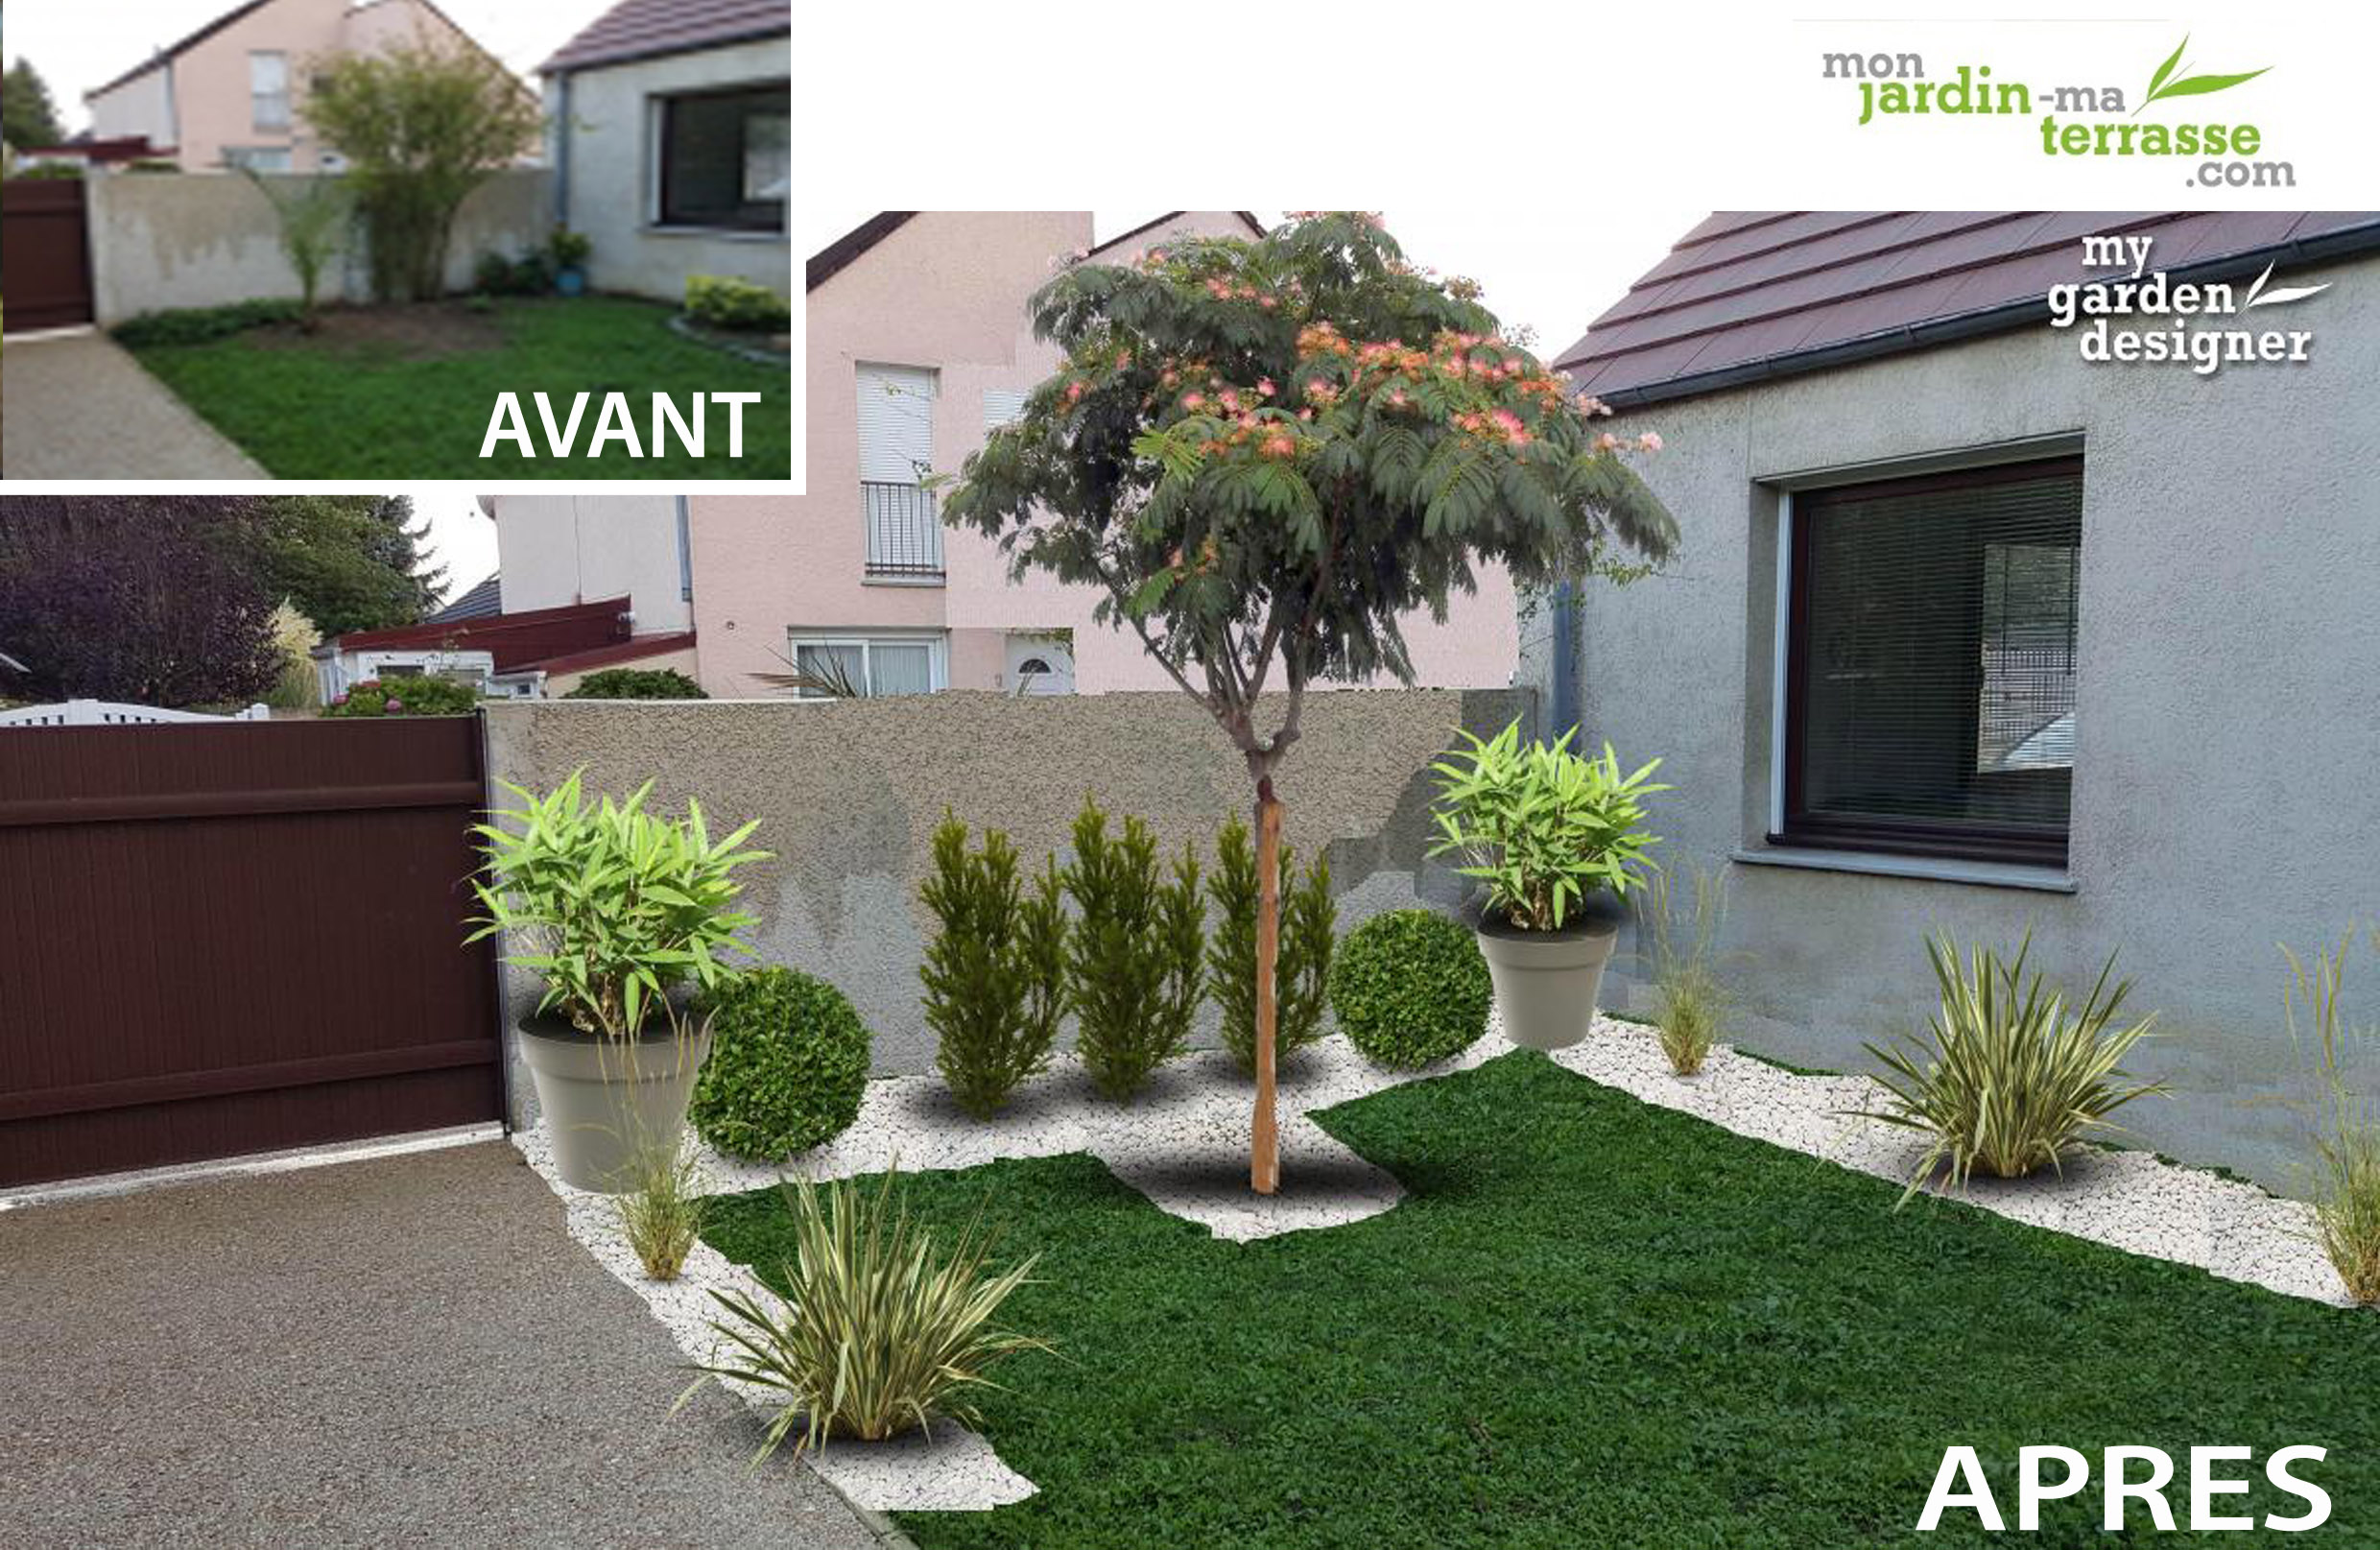 Am nager un petit jardin de 30m monjardin - Amenagement terrasse et jardin photo ...